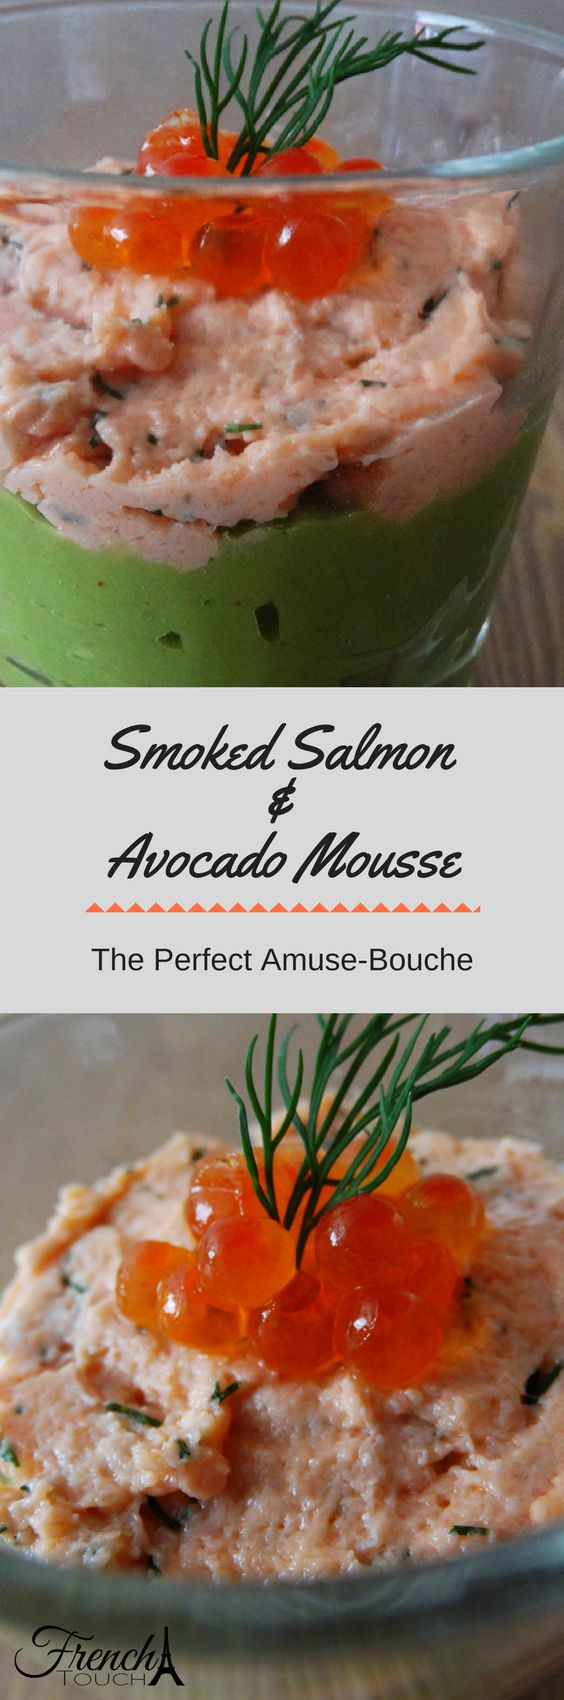 This smooth and creamy smoked salmon and avocado mousse is the perfect amuse-bouche/appetizer. Presented in a glass, it is perfect for a fancy party.An easy appetizer recipe to make!